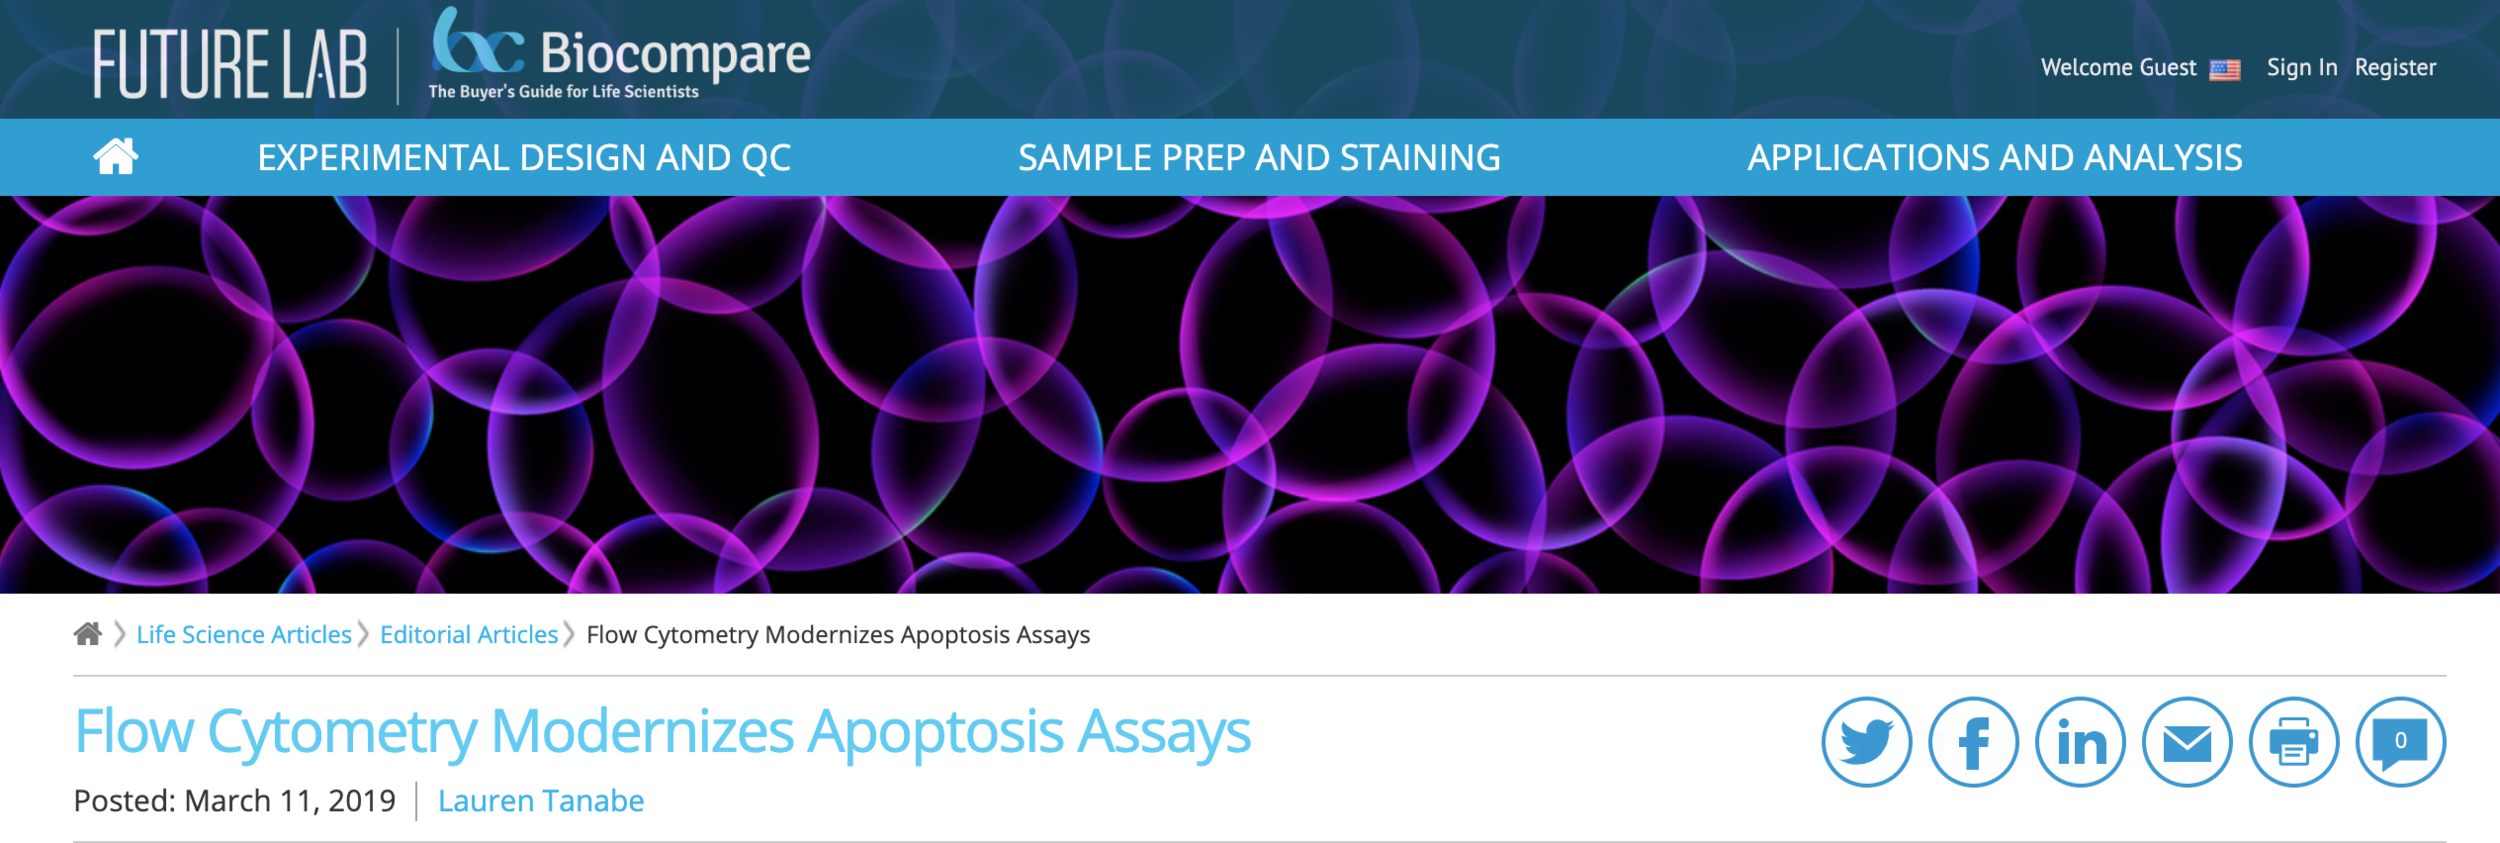 Flow Cytometry Modernizes Apoptotic Assays, BioCompare, March 11, 2019 -